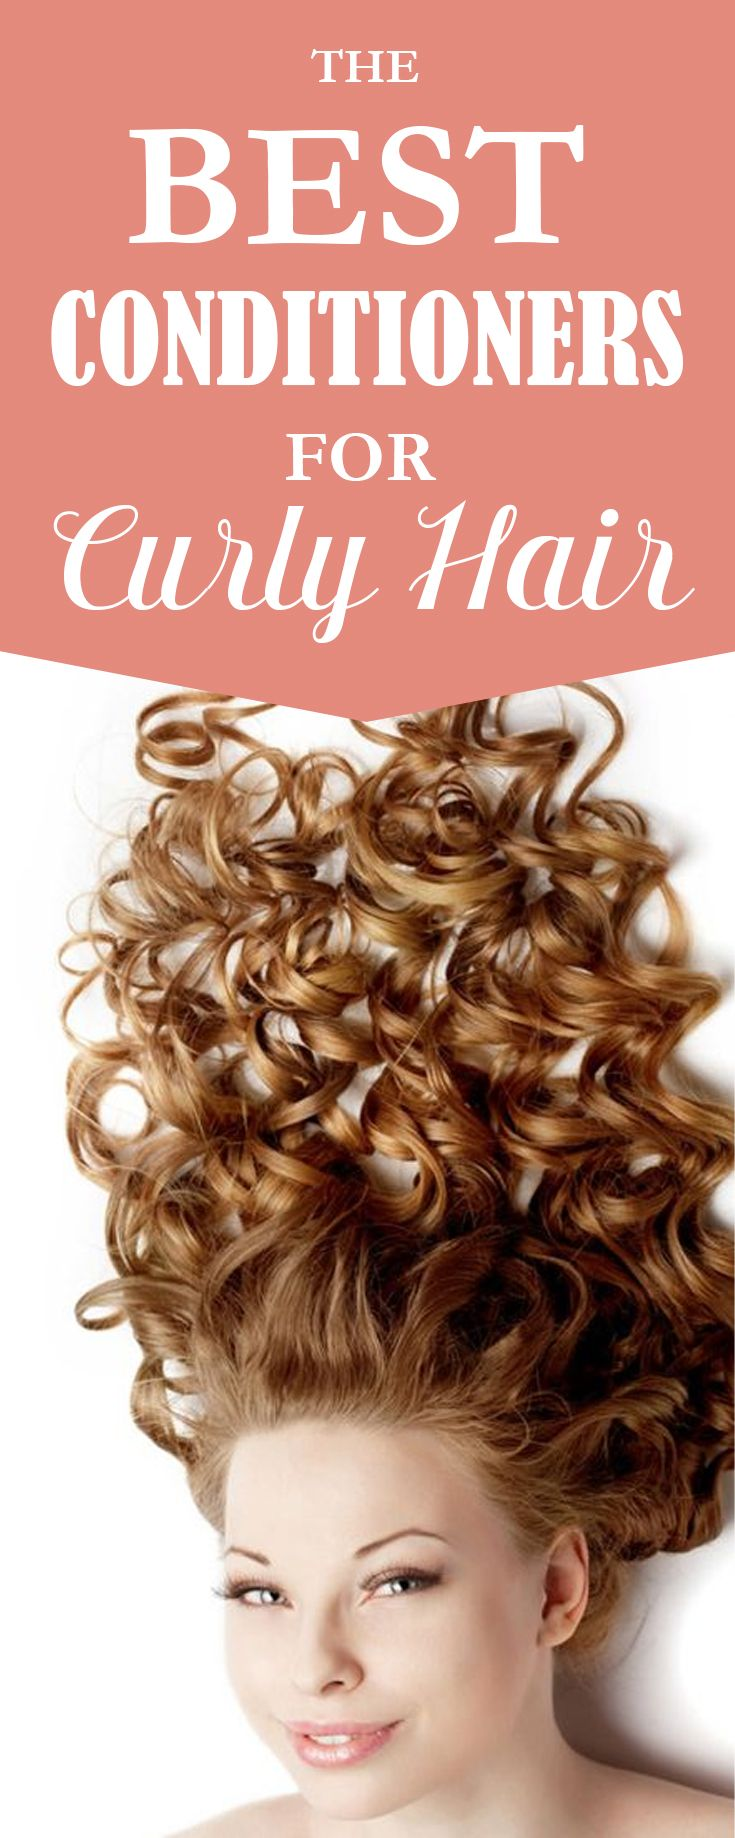 The Best Conditioners for Curly Hair   Frizzy hair ...